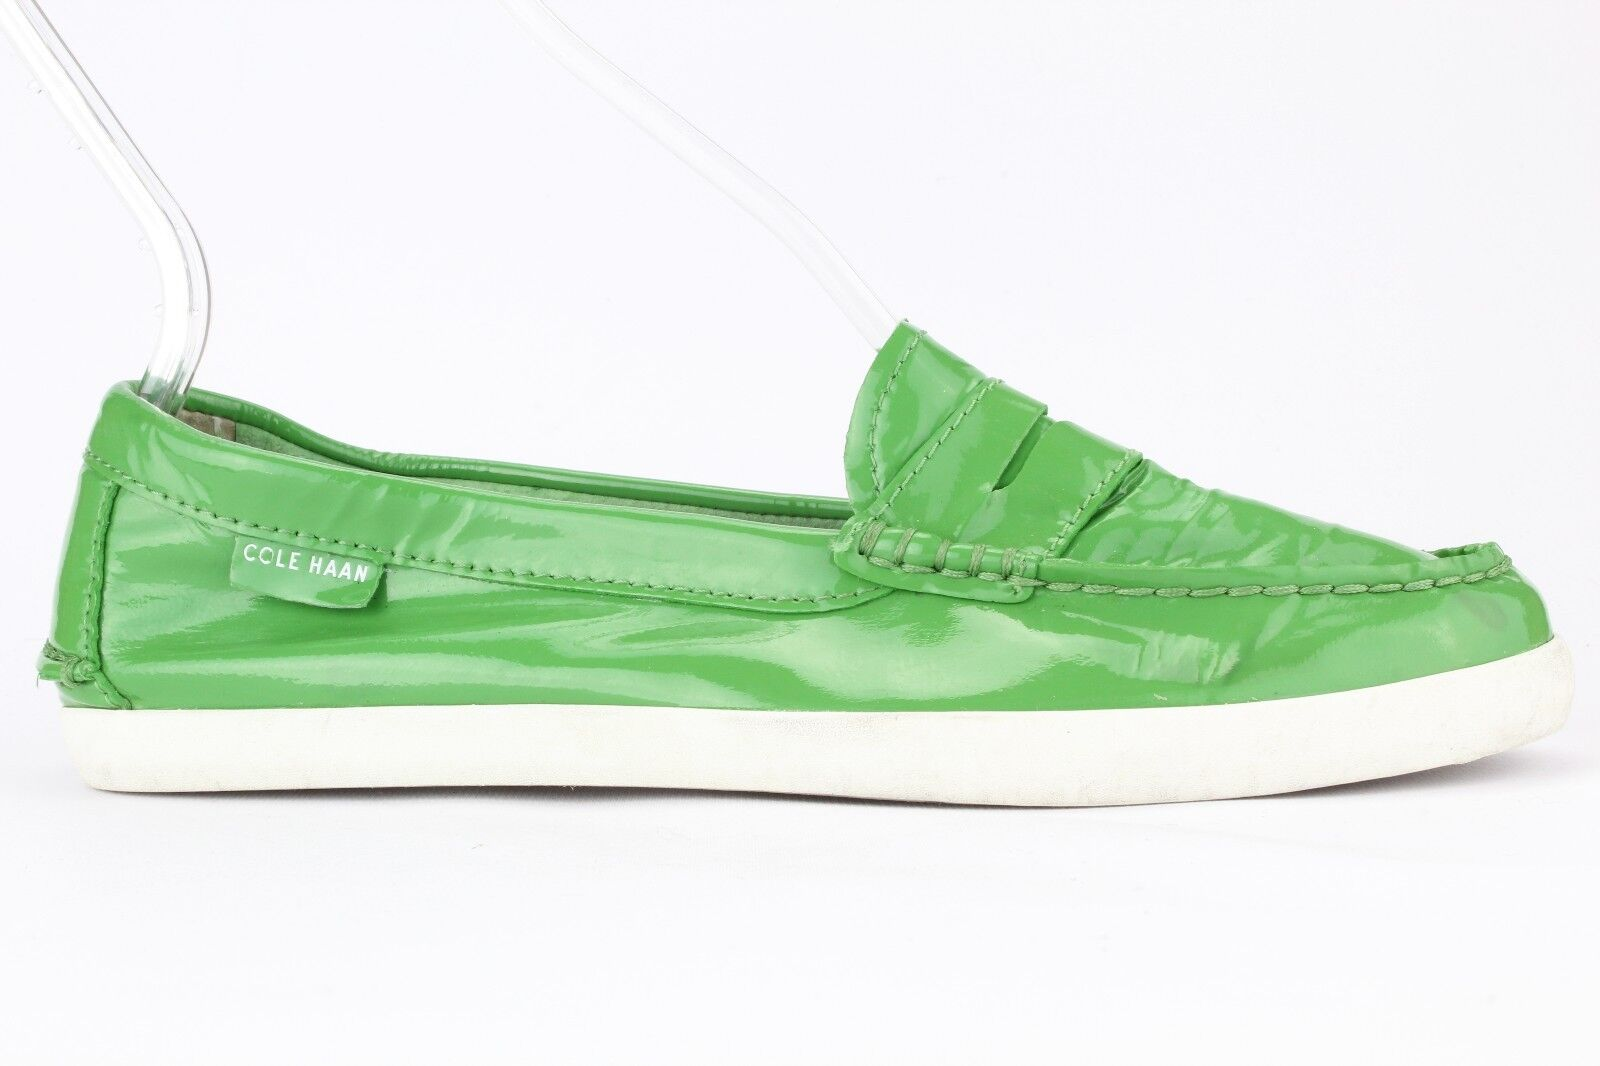 Cole Haan Women's Green Leather Pinch Slip-on Loafer Size 7.5